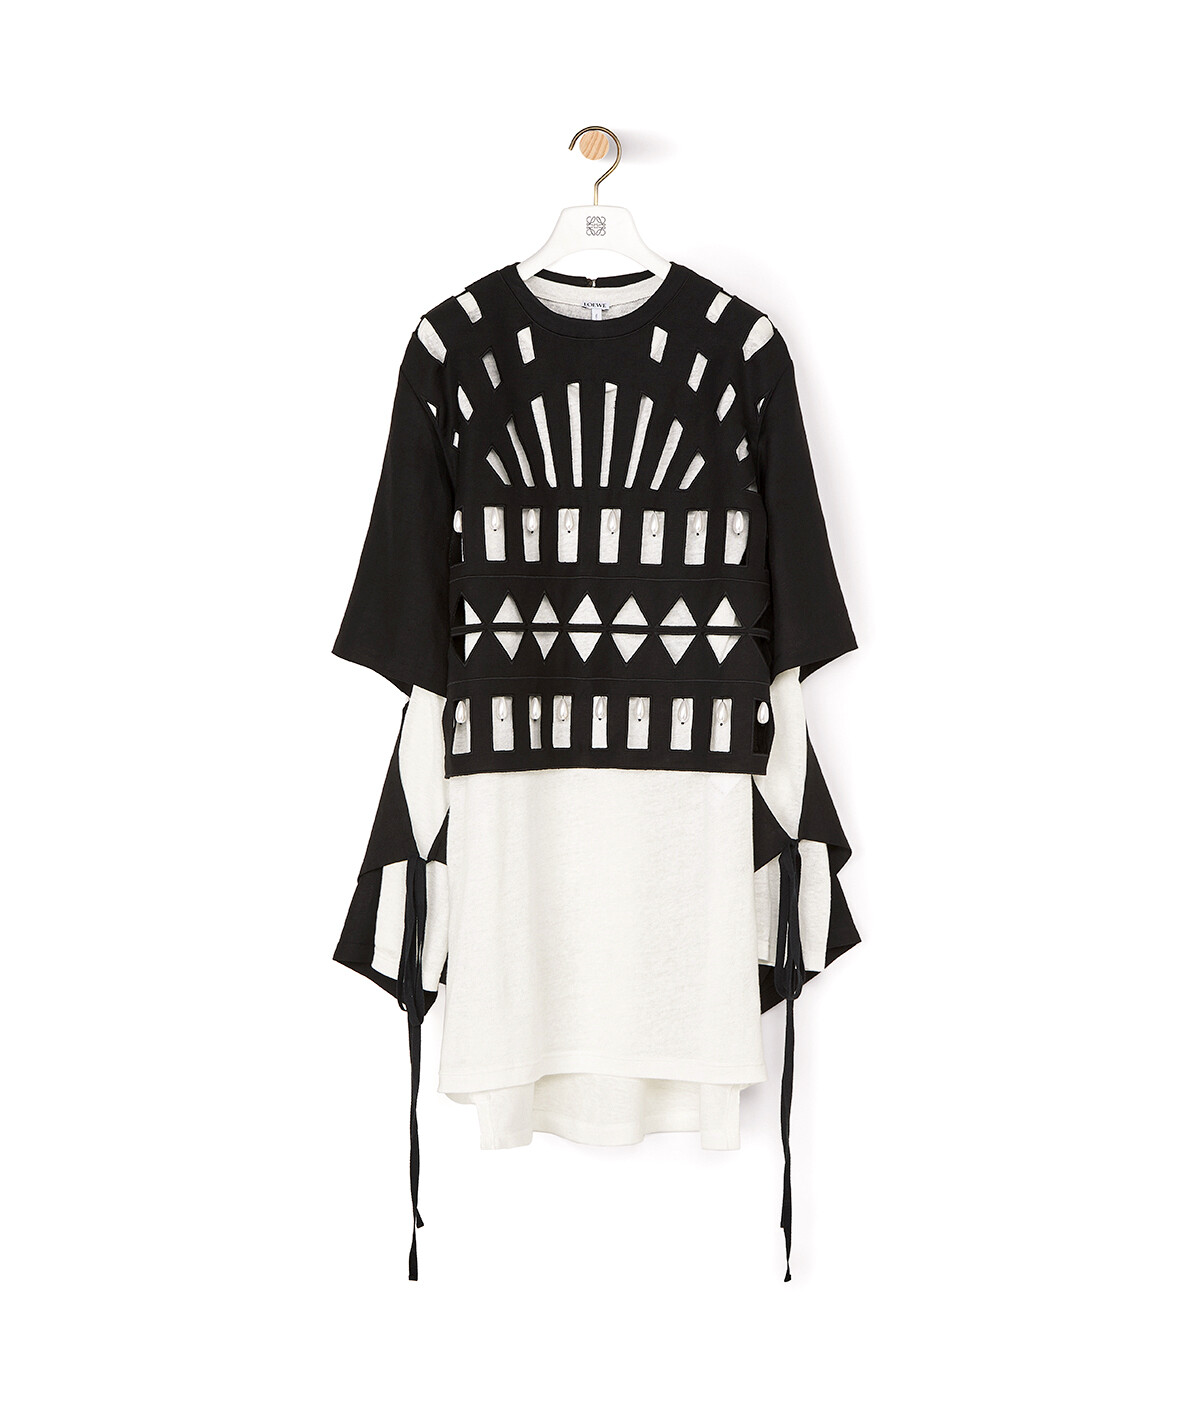 LOEWE Cut Out Top Black/White front